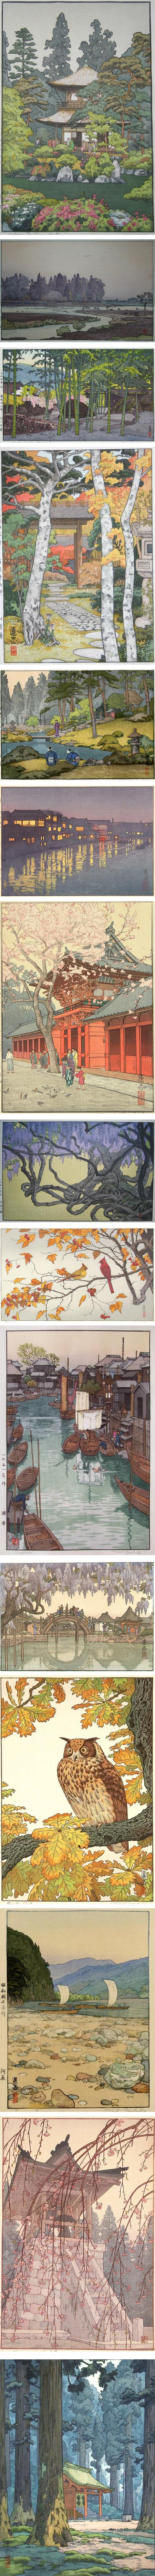 Toshi Yoshida, Japanese woodblock prints in the Sosaku-hanga tradition